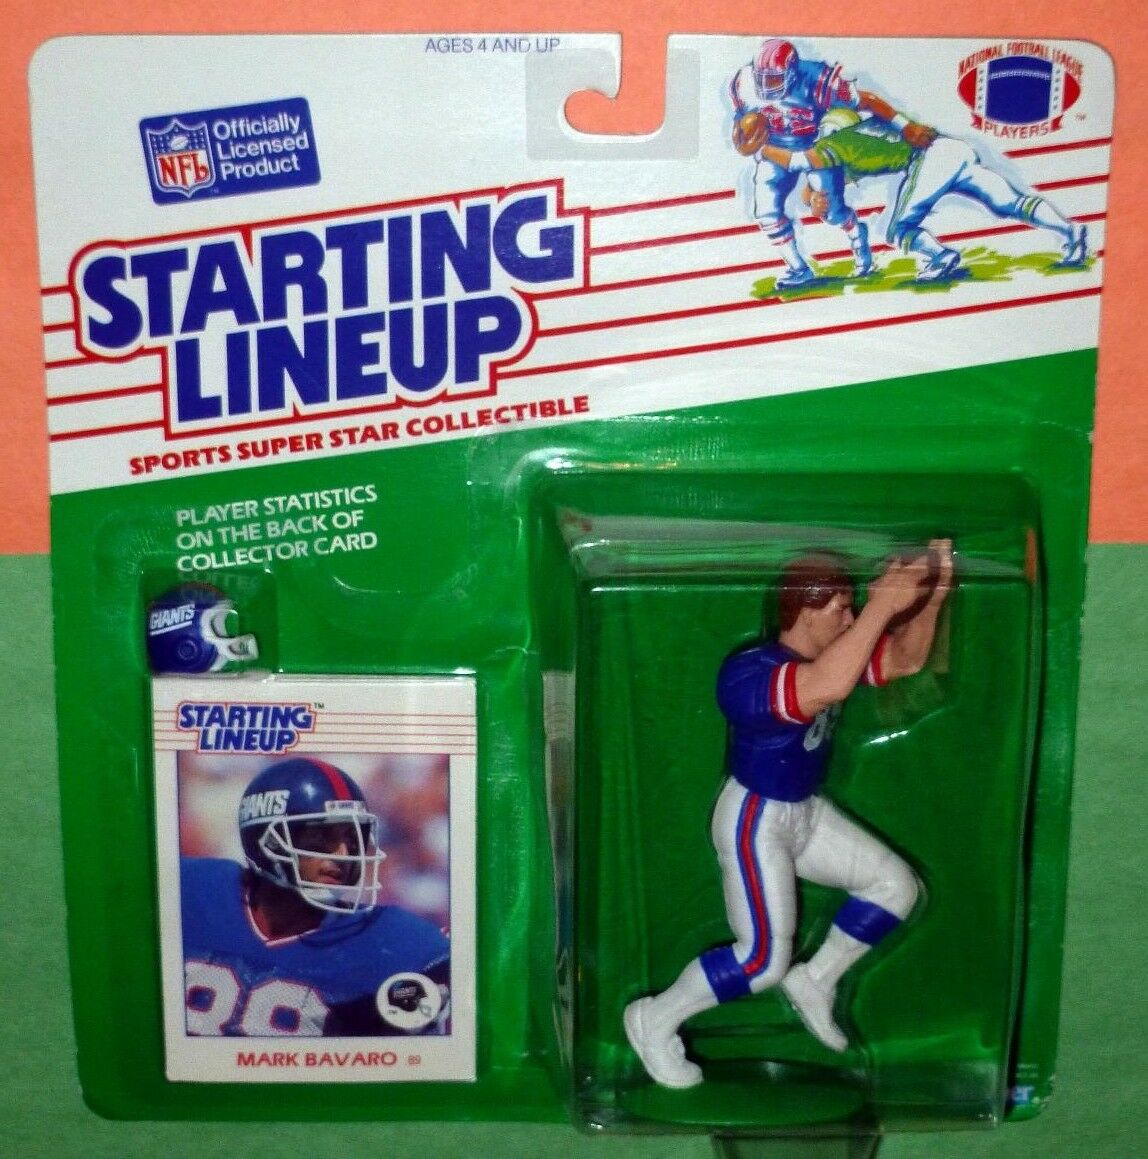 1988 MARK BAVARO nuovo York Giants  Rookie  gratuito s h  estrellating Lineup  più ordine